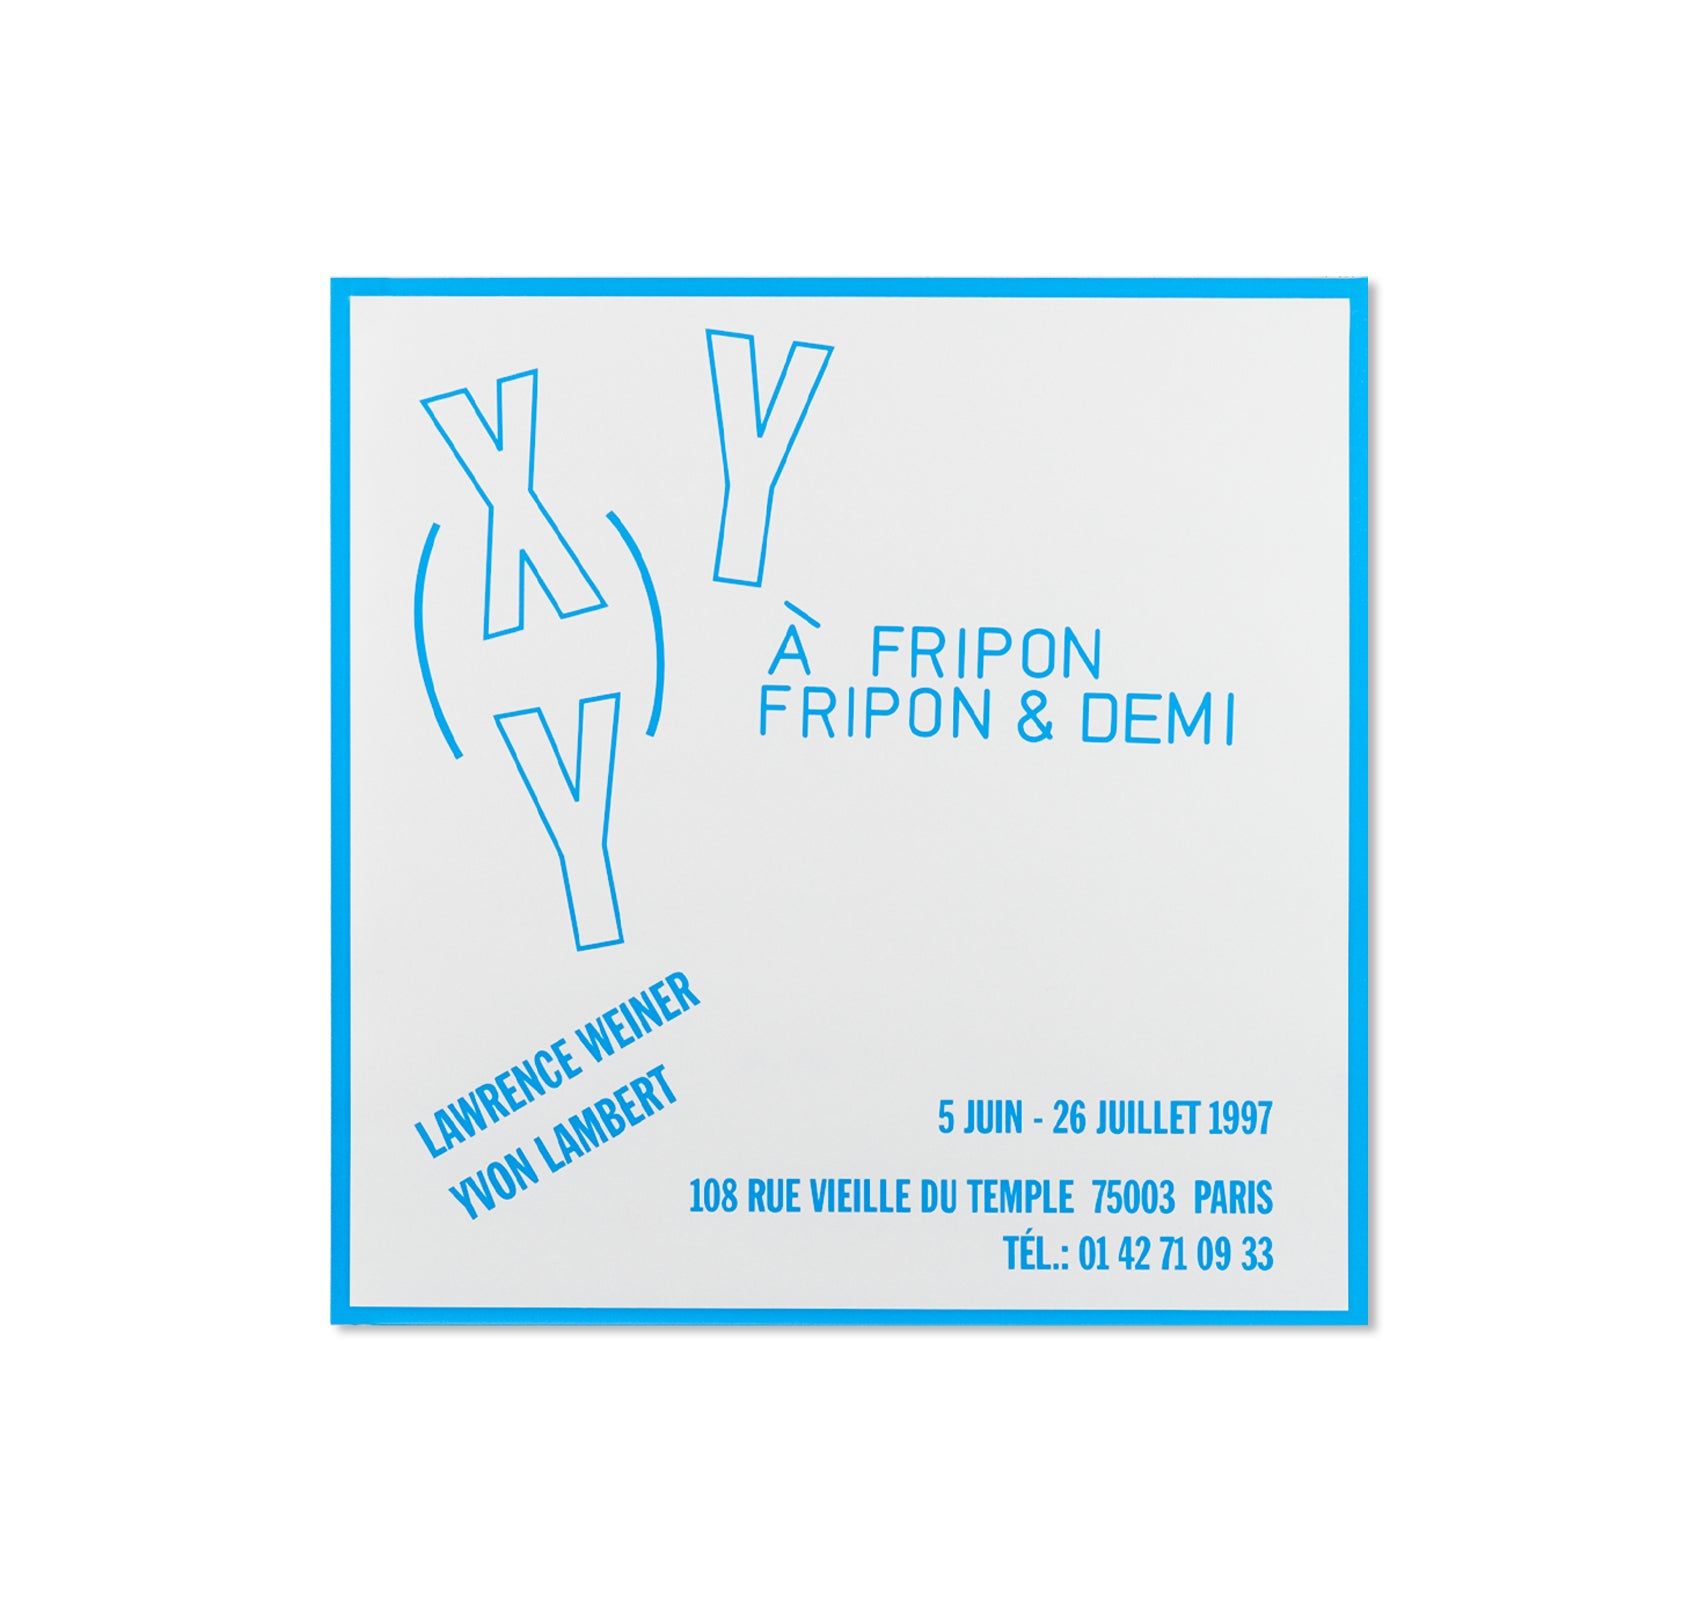 À FRIPON FRIPON & DEMI PRINT by Lawrence Weiner